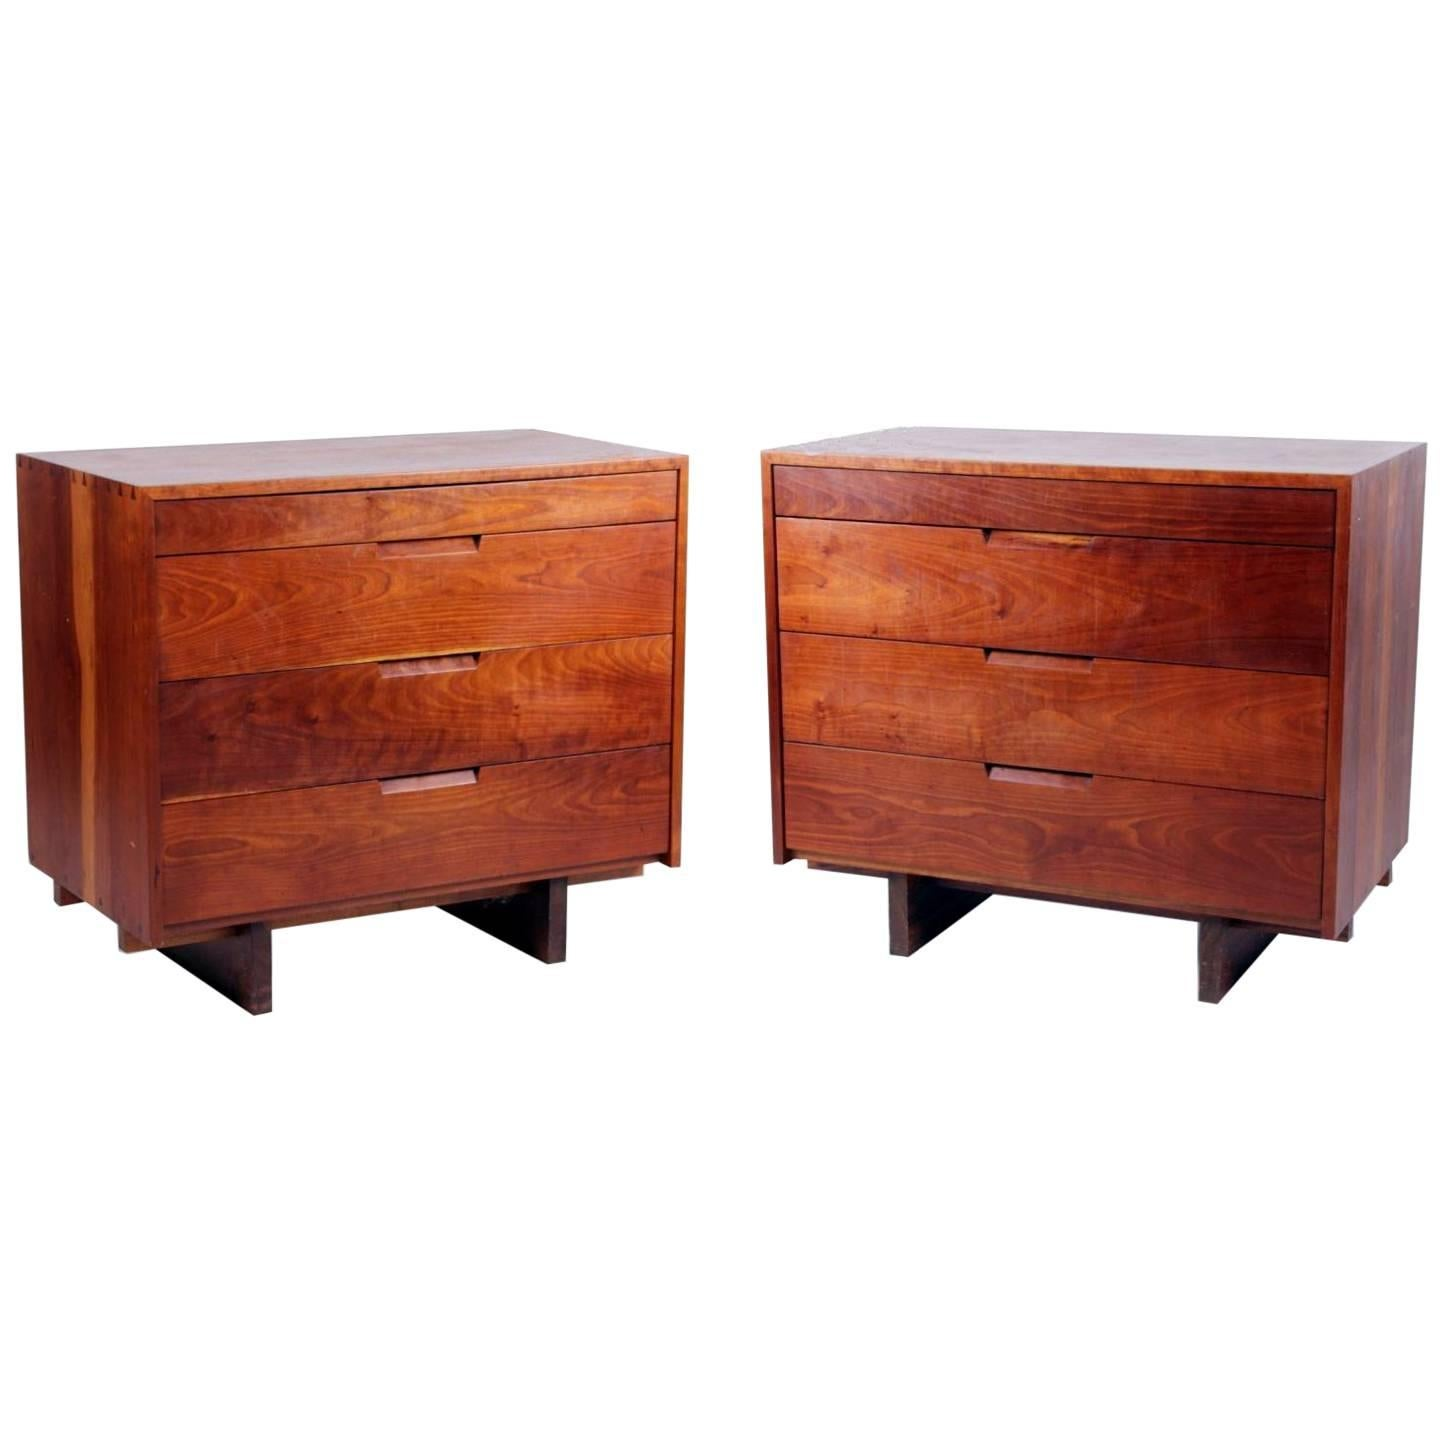 Pair of Dovetailed Dressers by George Nakashima